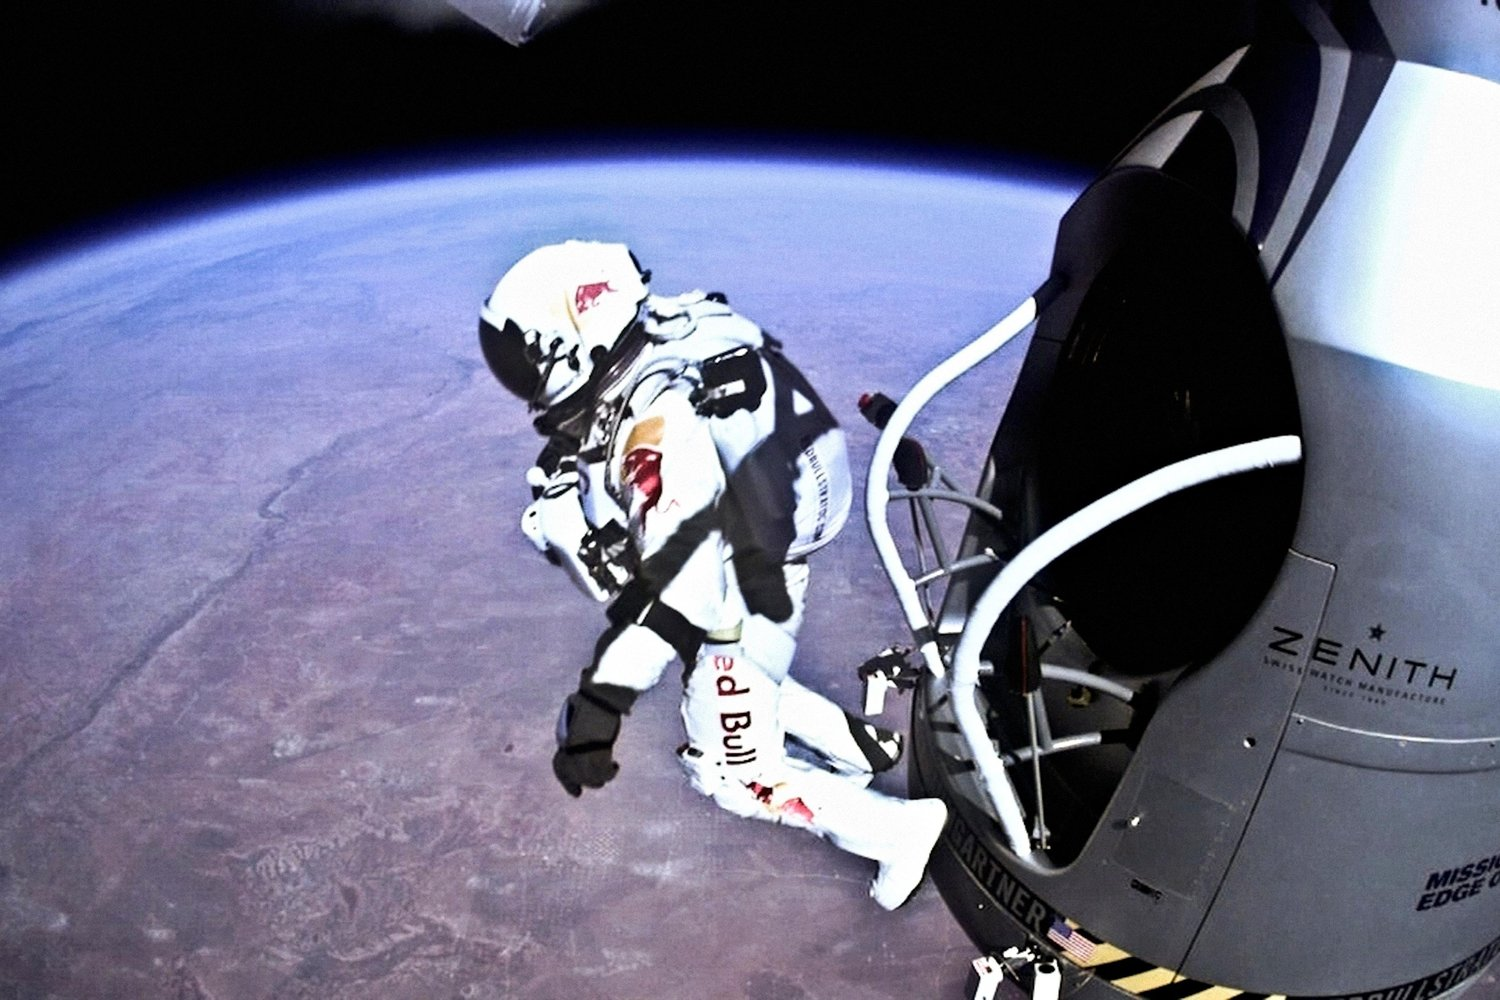 Felix Baumgartner workkidssleep